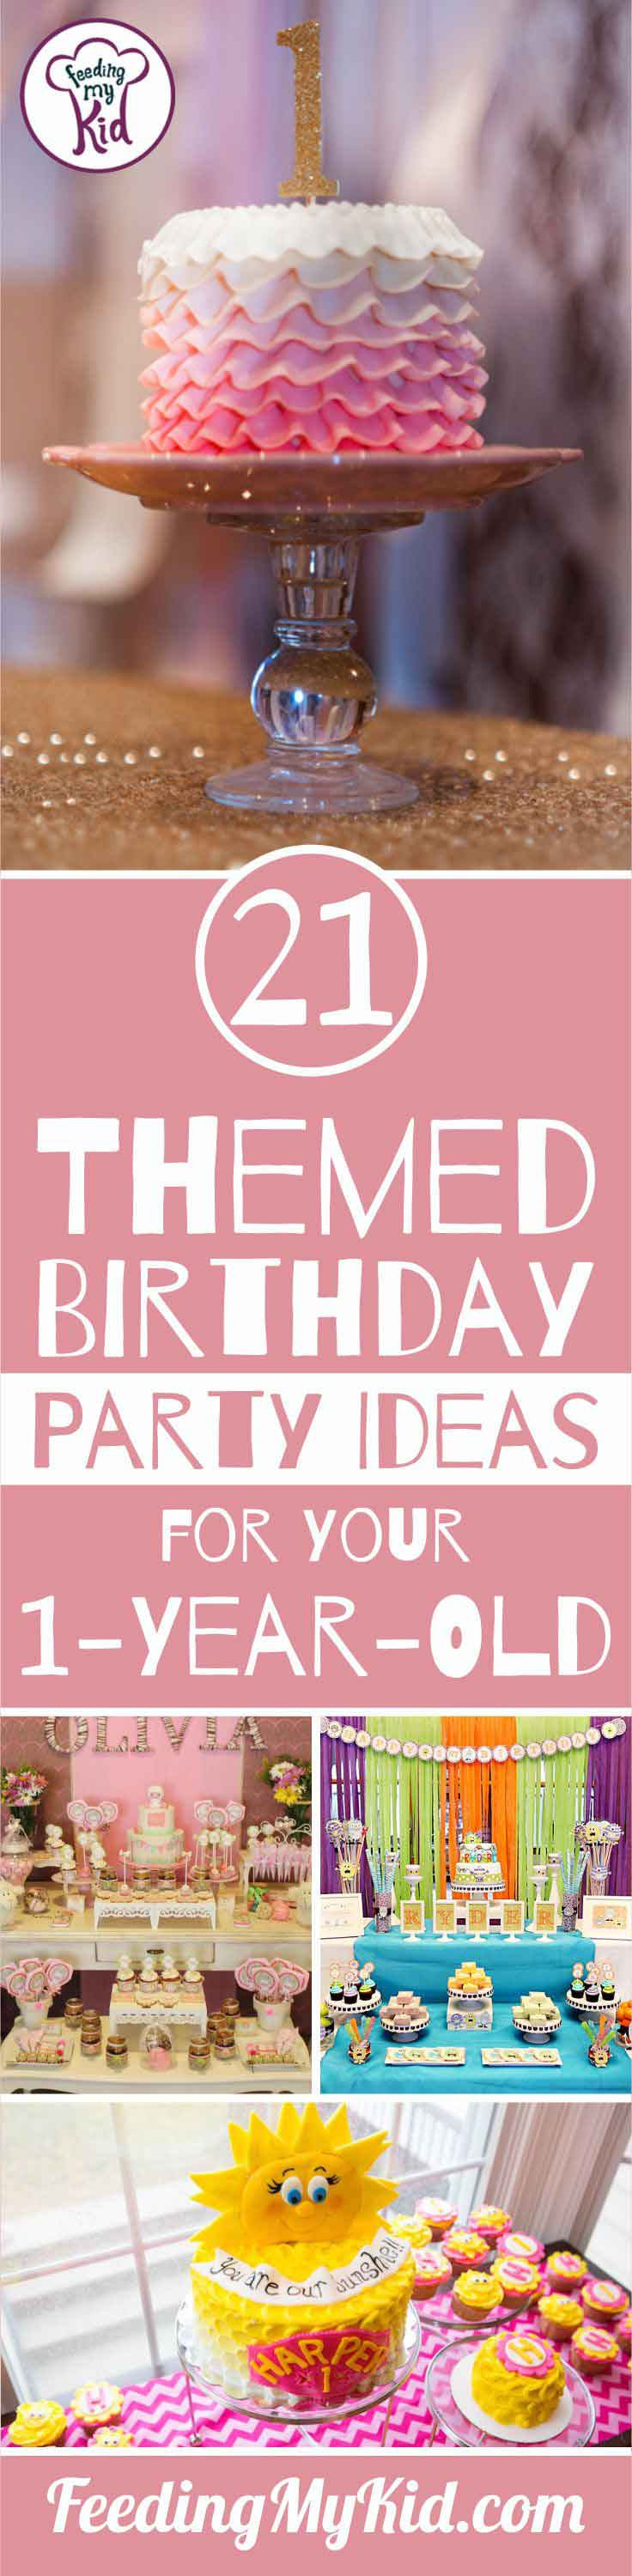 These Birthday Party Themes Are Perfect For Your New 1 Year Old! These